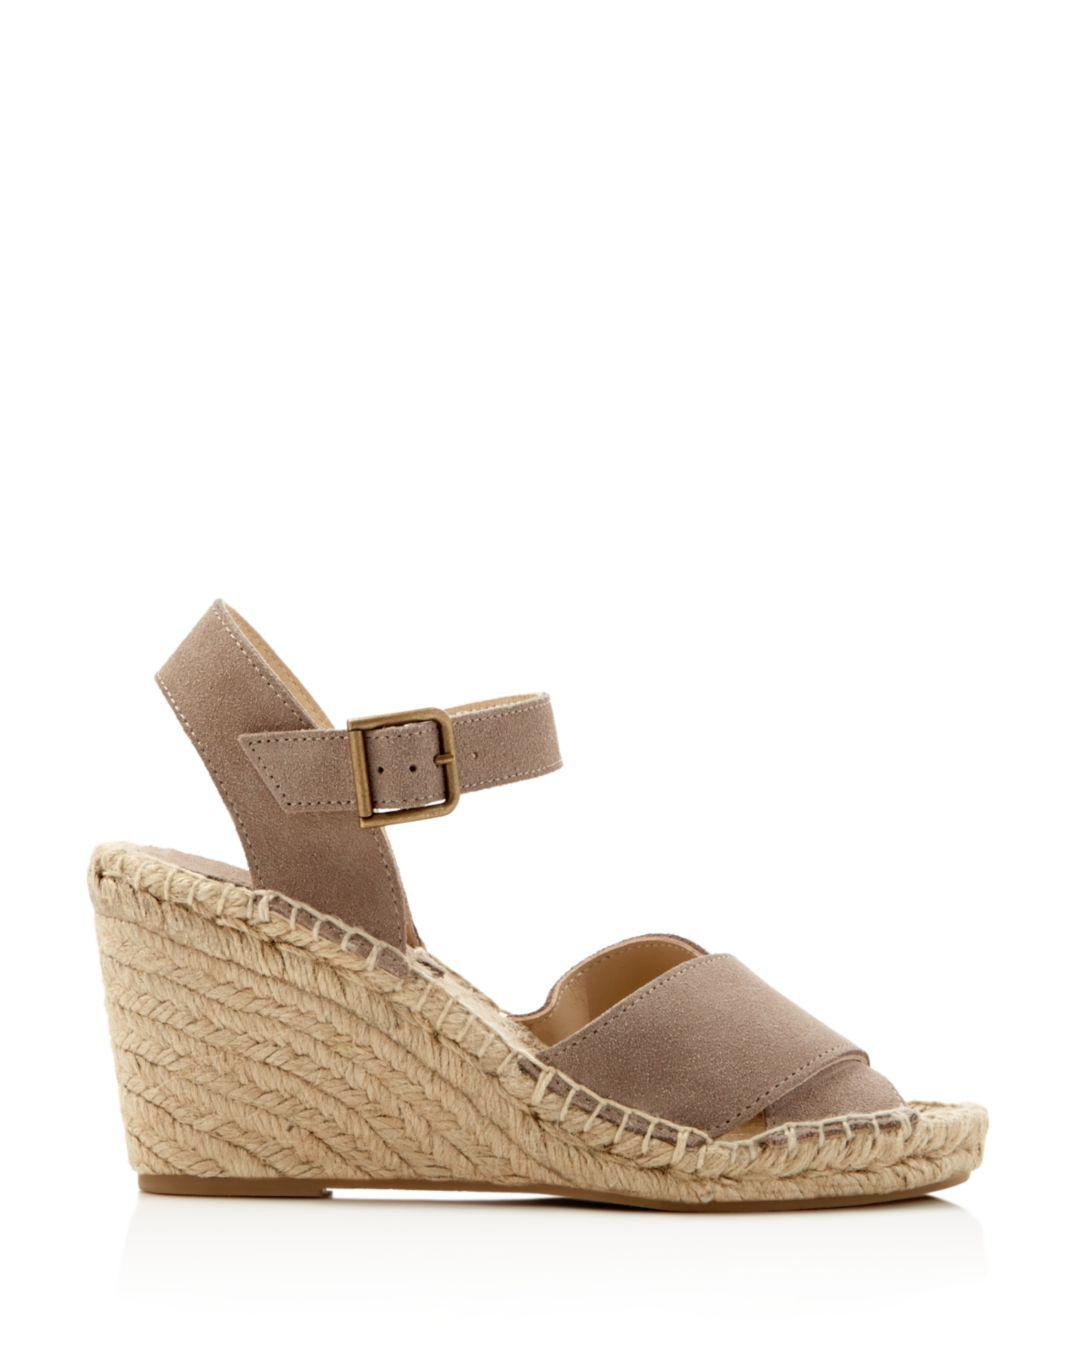 e7542ea46b8 Lyst - Soludos Crisscross Wedge Espadrilles in Purple - Save 50%